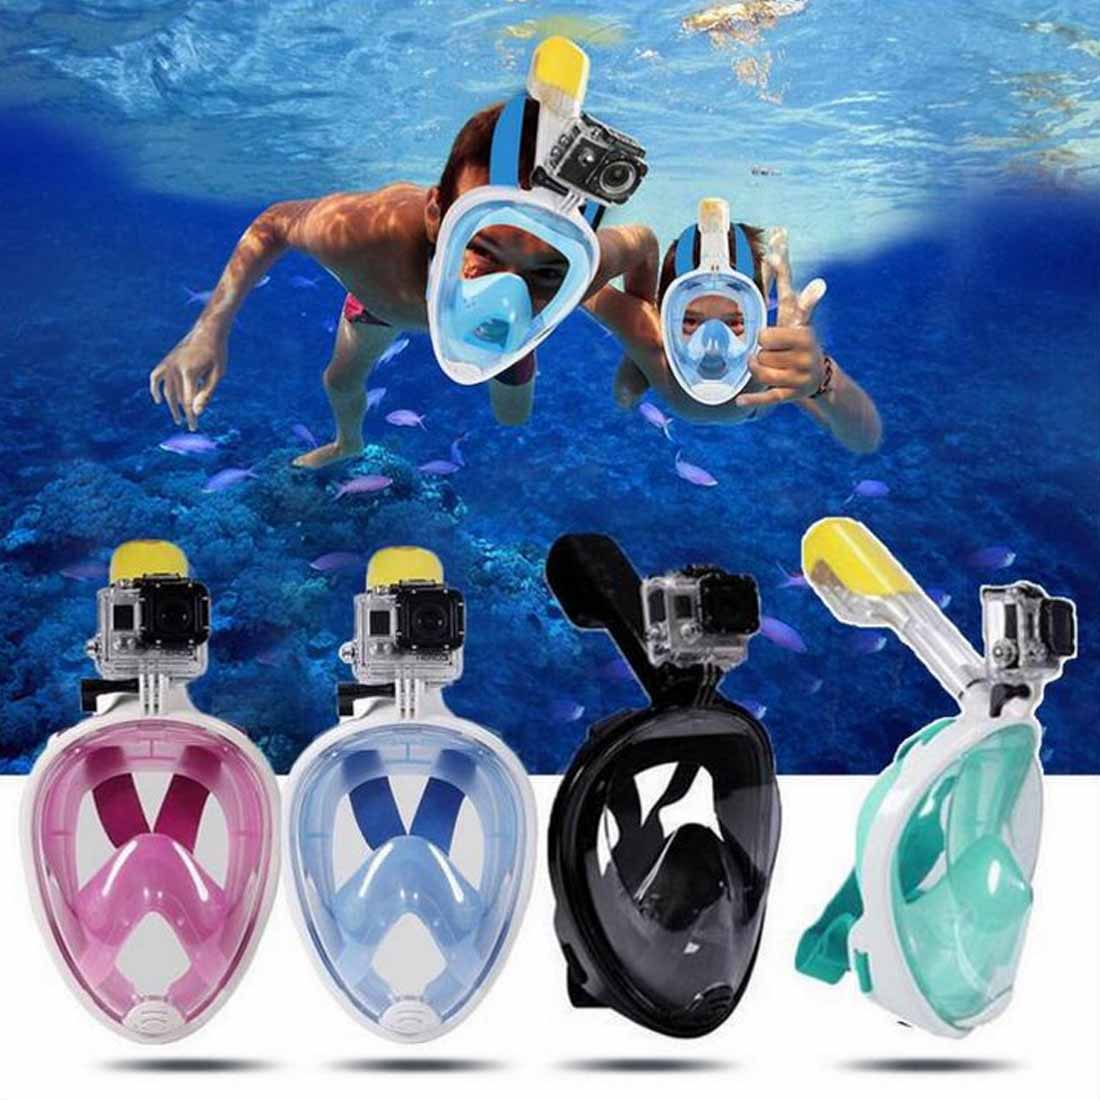 High Quality Anti-fog Anti-Leak Full Face Snorkeling Masks Panoramic View Swimming Snorkel Scuba Underwater Scuba Diving Mask 2018 new underwater scuba anti fog full face diving mask snorkeling set respiratory masks safe and waterproof